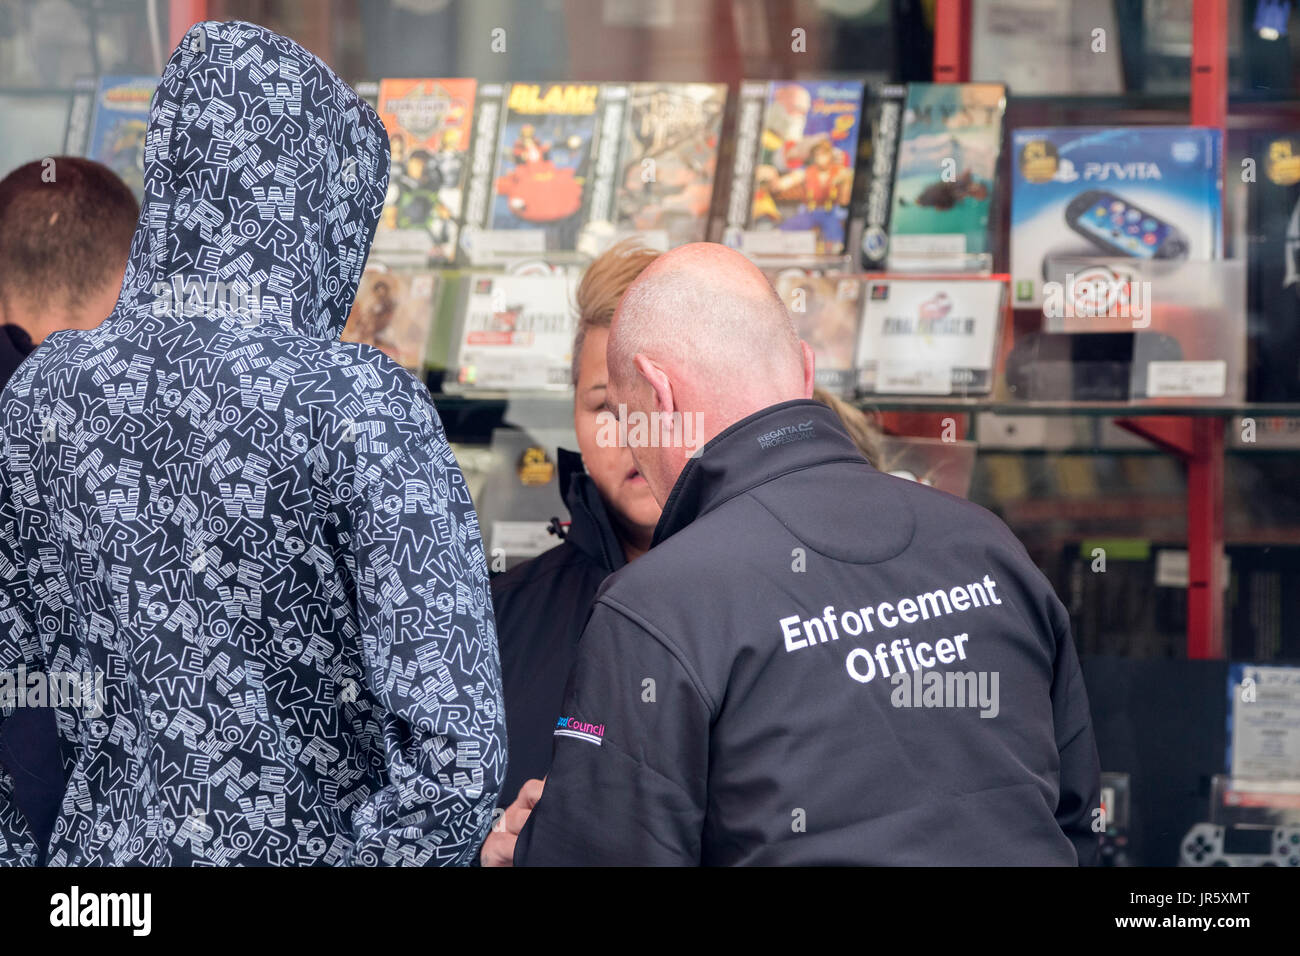 A civil enforcement officer issuing a fixed penalty notice for littering on the streets of Blackpool in Lancashire - Stock Image